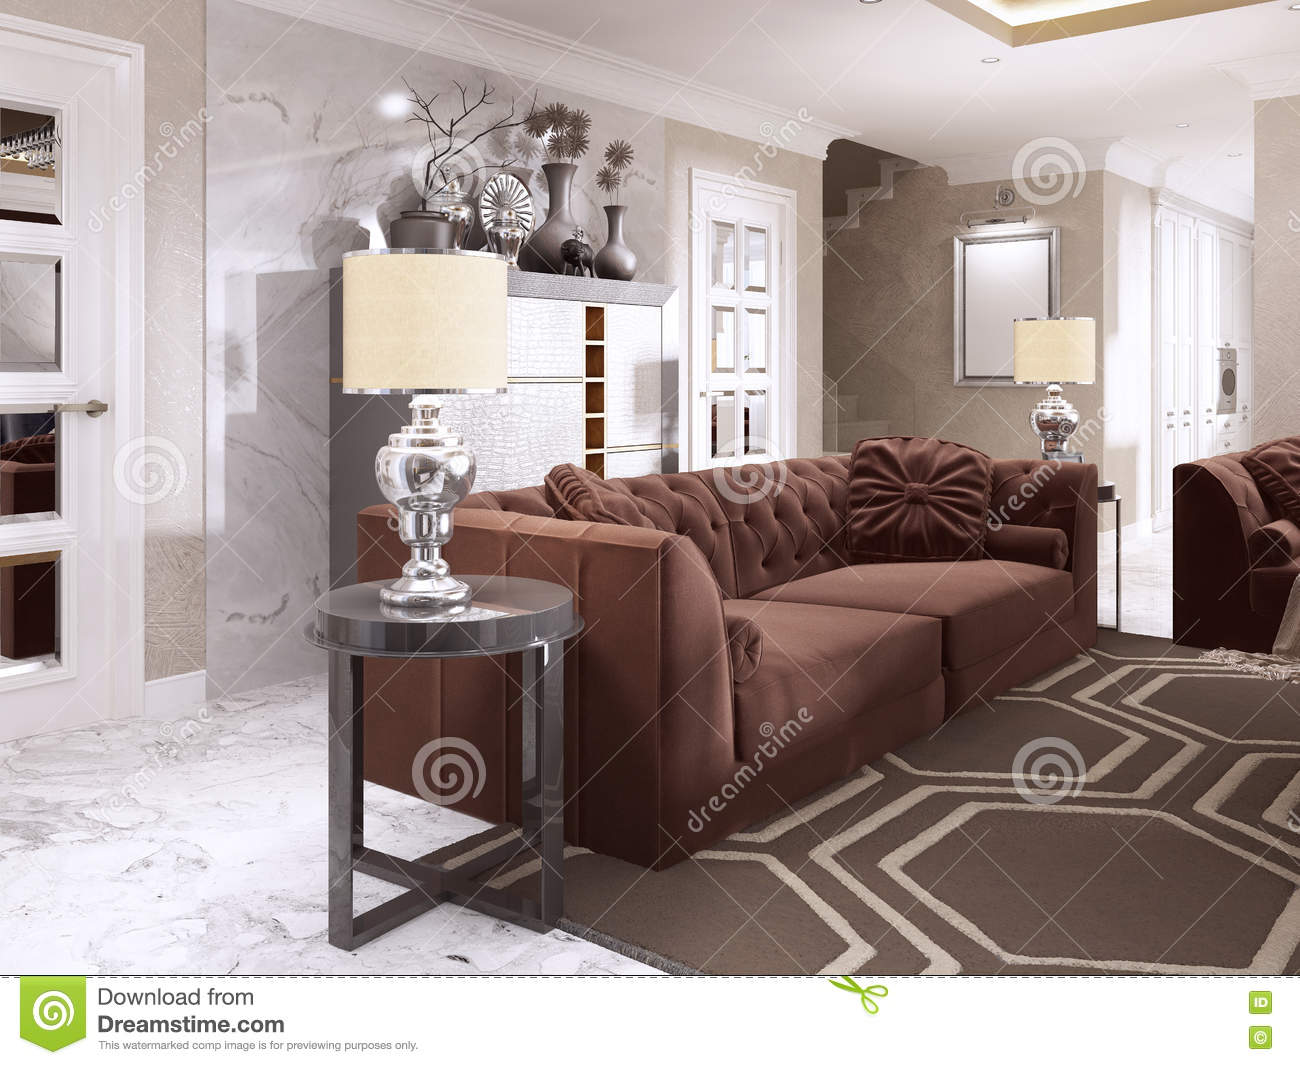 Download Maroon Sofa With Black Side Tables And Table Lamps. Stock Photo    Image Of